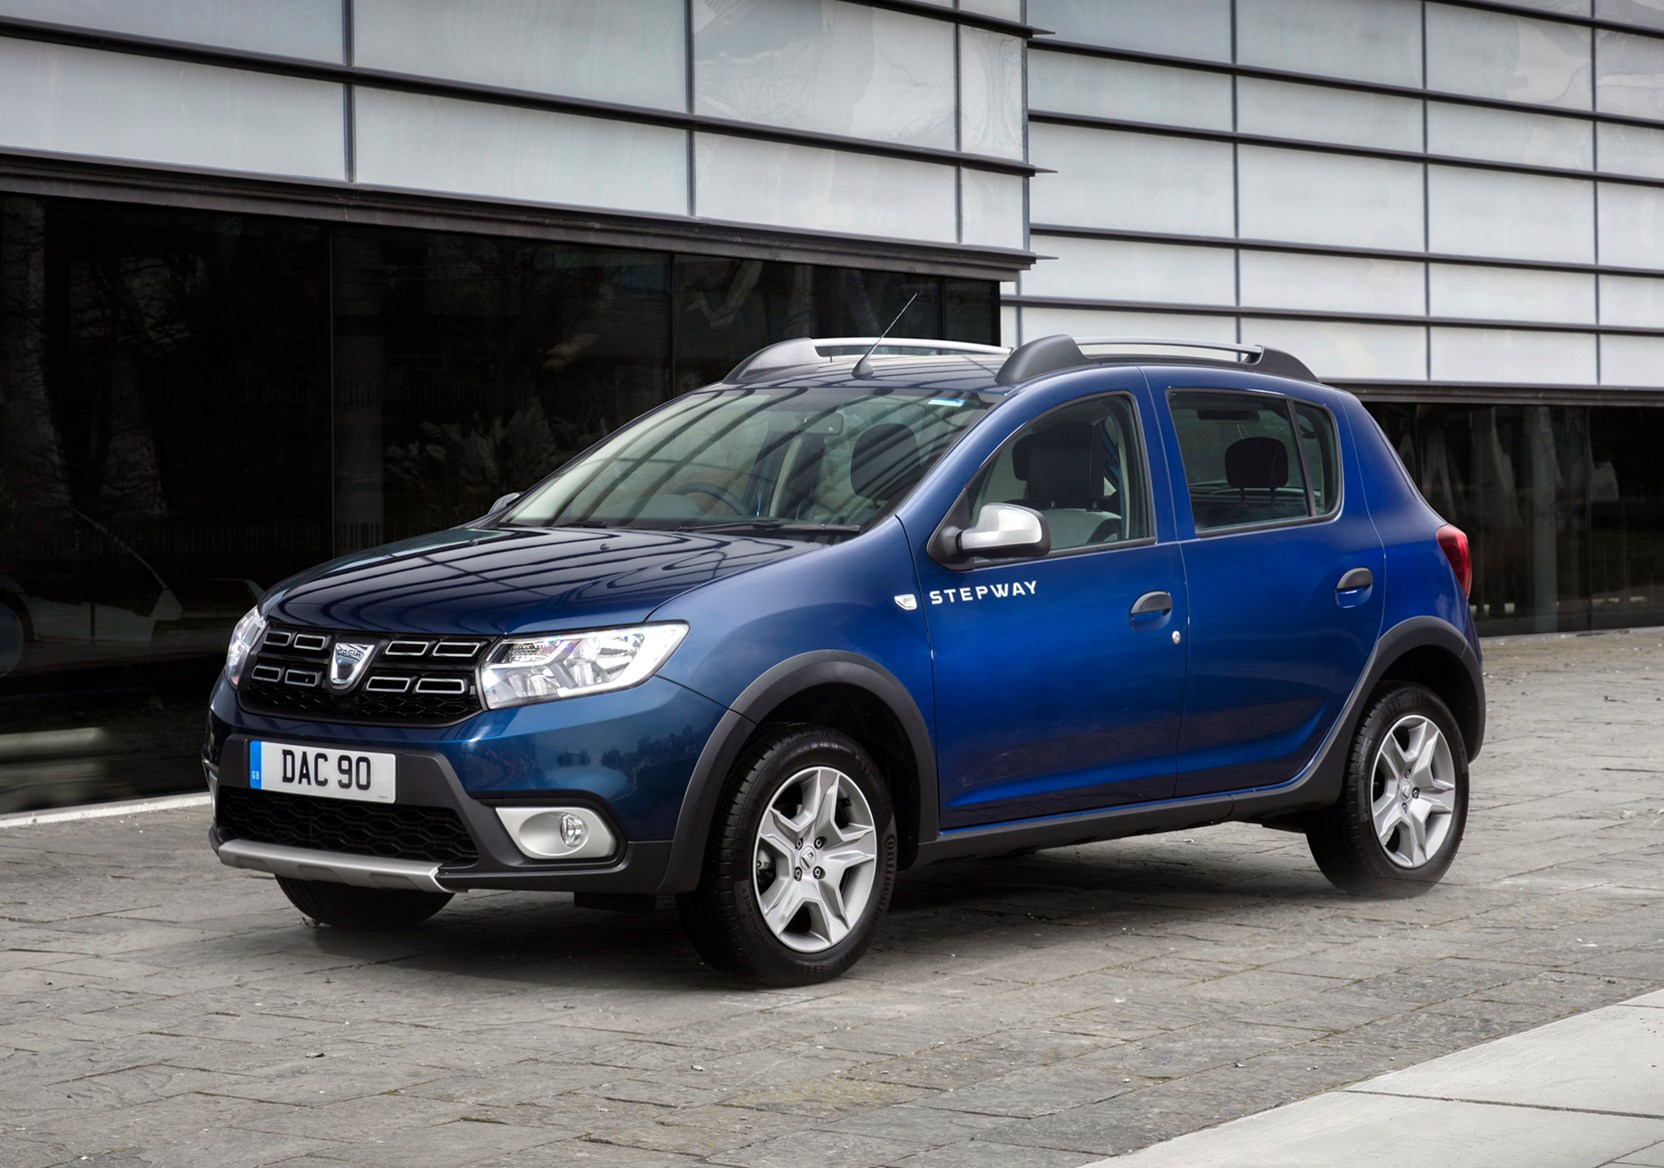 dacia sandero stepway review 2019 parkers. Black Bedroom Furniture Sets. Home Design Ideas